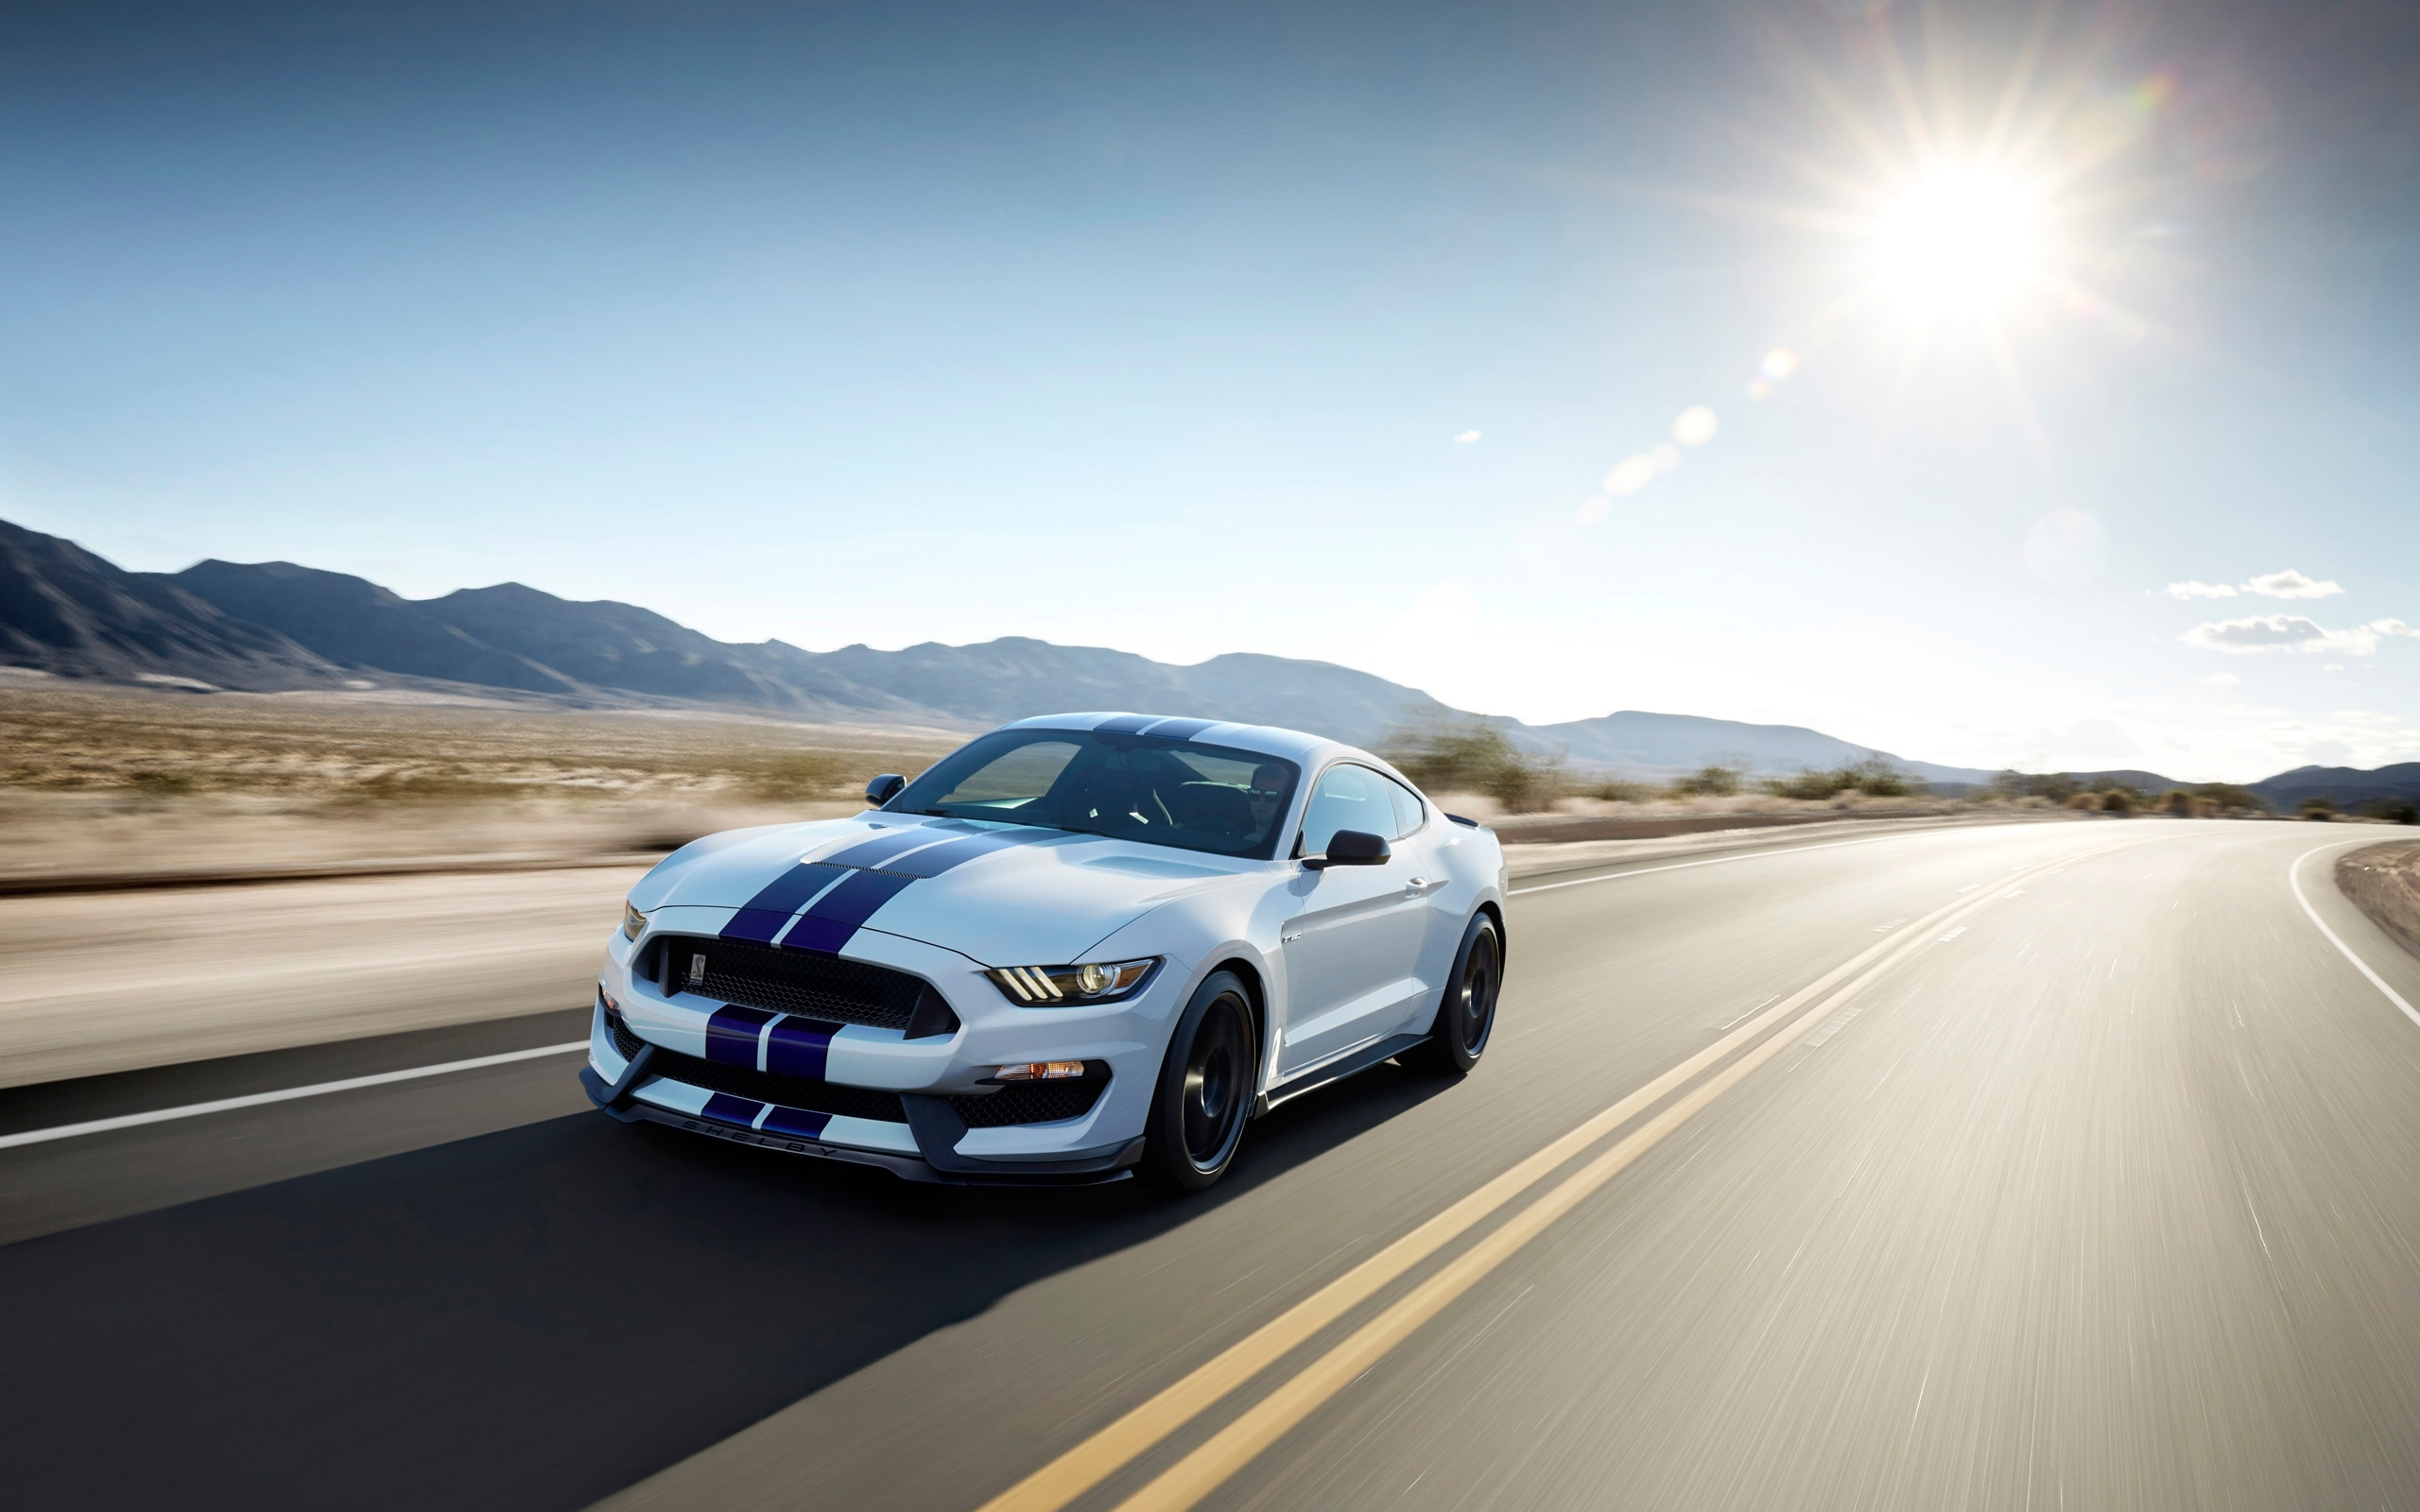 2015 Ford Shelby GT350 Mustang Wallpaper HD Car Wallpapers 2560x1600